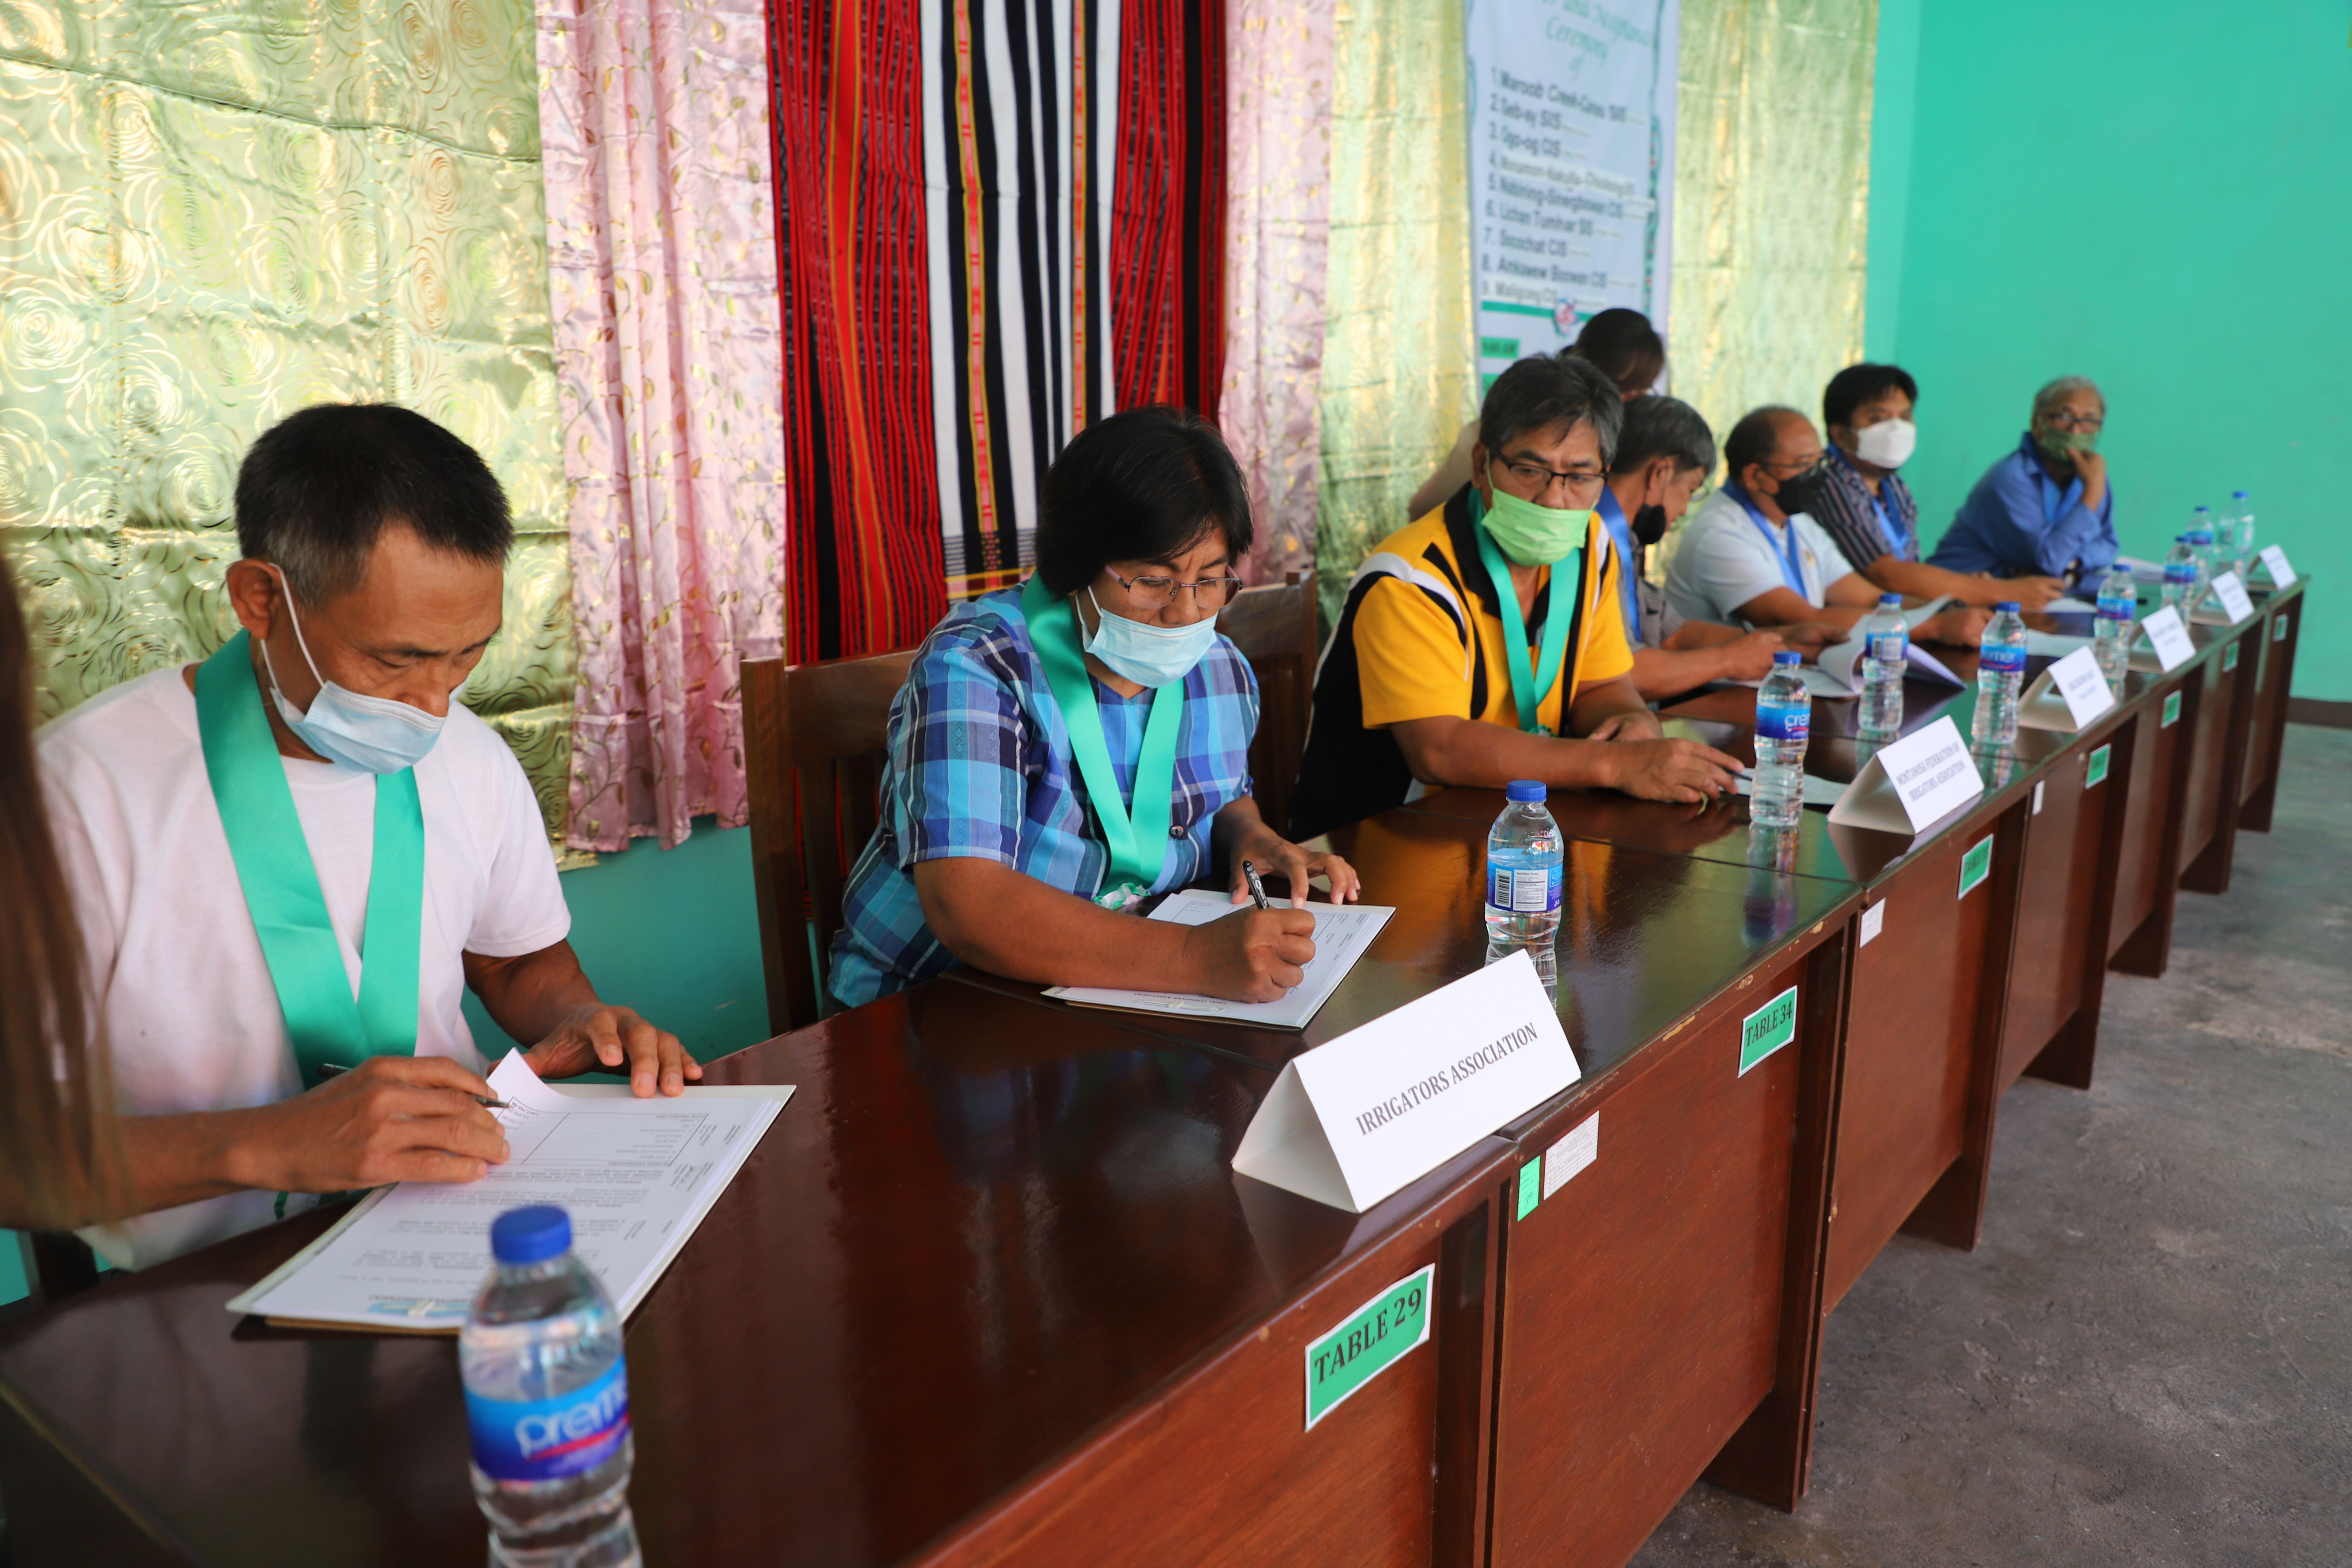 Leaders of Irrigators' Associations sign turnover documents of nine irrigation projects turned over to them in a turnover ceremony at the NIA grounds in Brgy. Caluttit, Bontoc, Mountain Province on September 1, 2021.